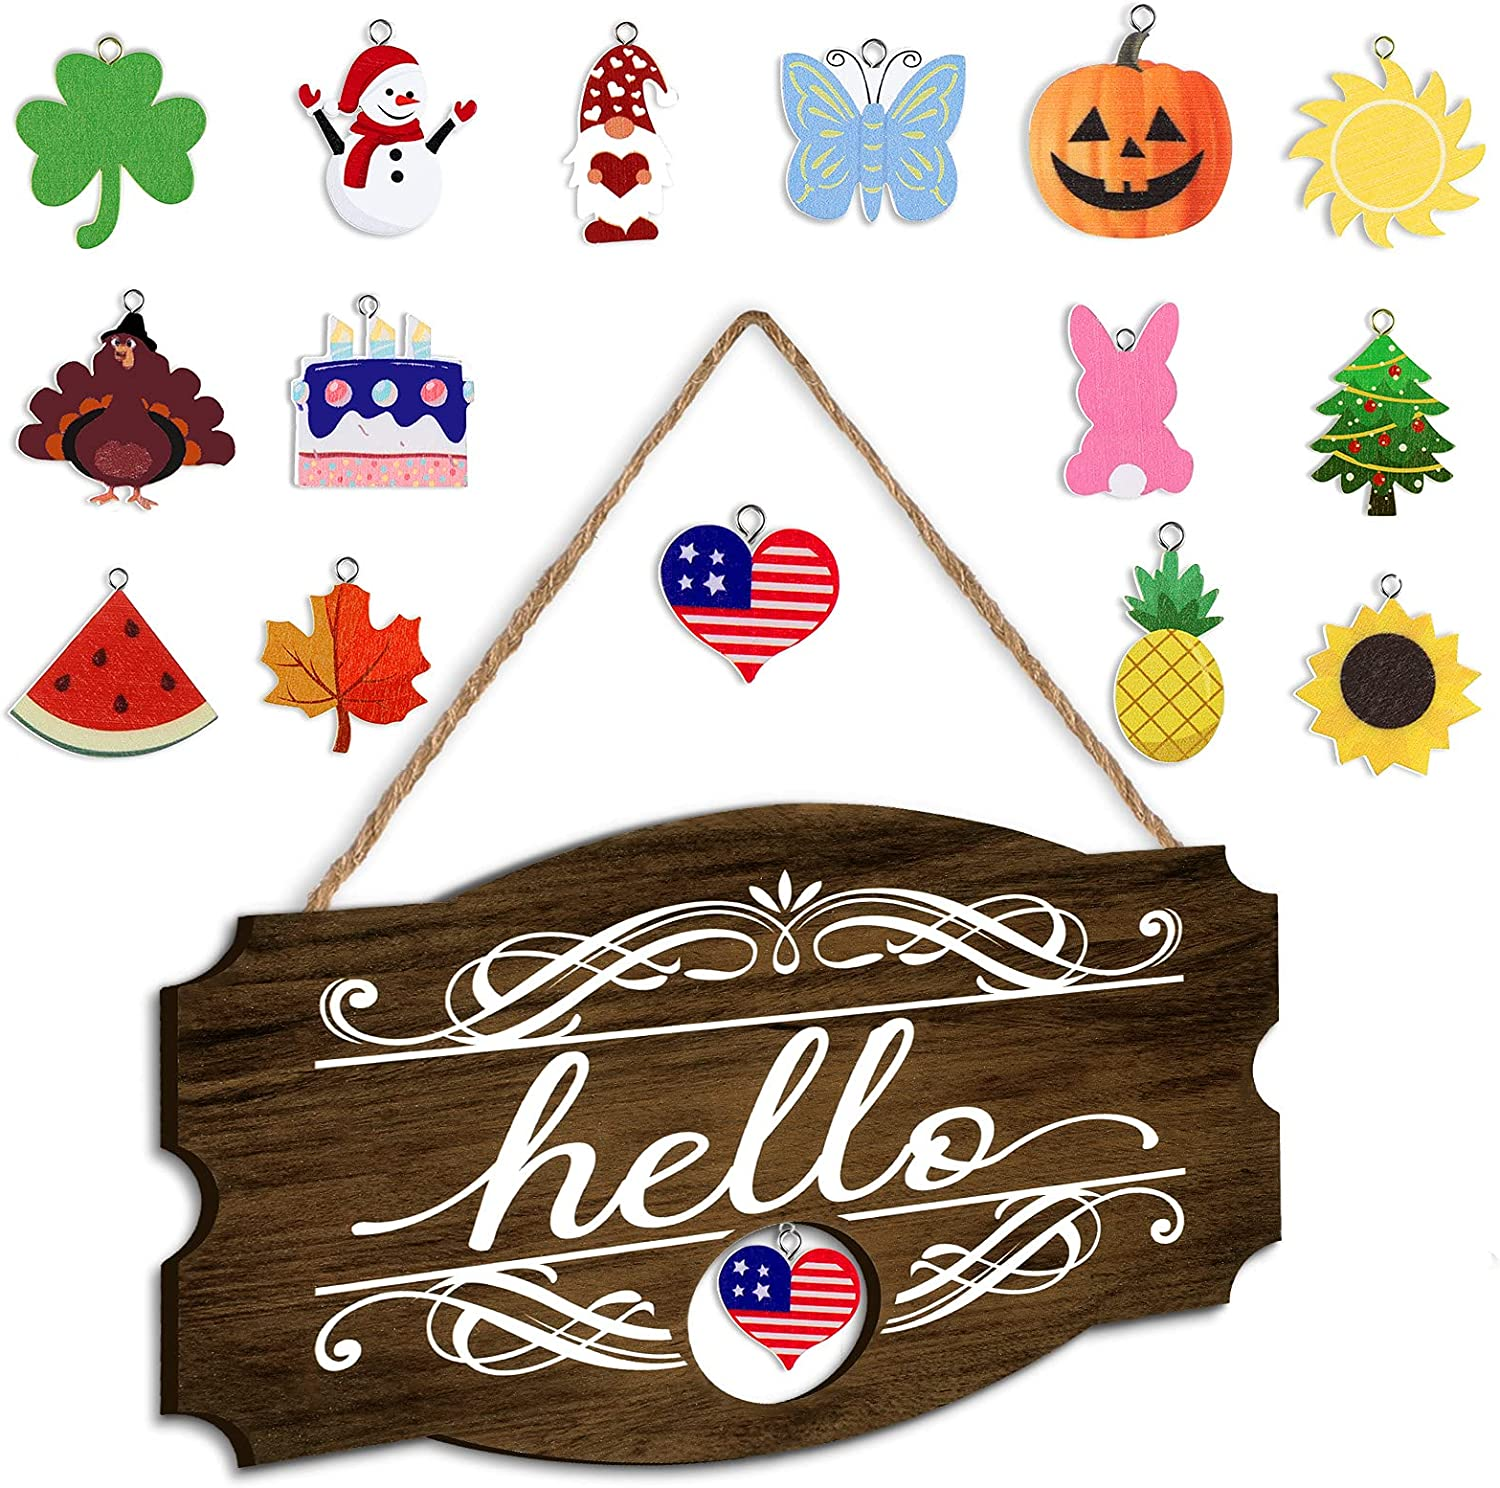 Interchangeable Seasonal Hello Sign Rustic Wood Front Door Decor Welcome Home Farmhouse Wall Hanging Porch Decoration with 16 Holiday Pendants for Independence Day Summer Fall Halloween, 14 x 9 Inch